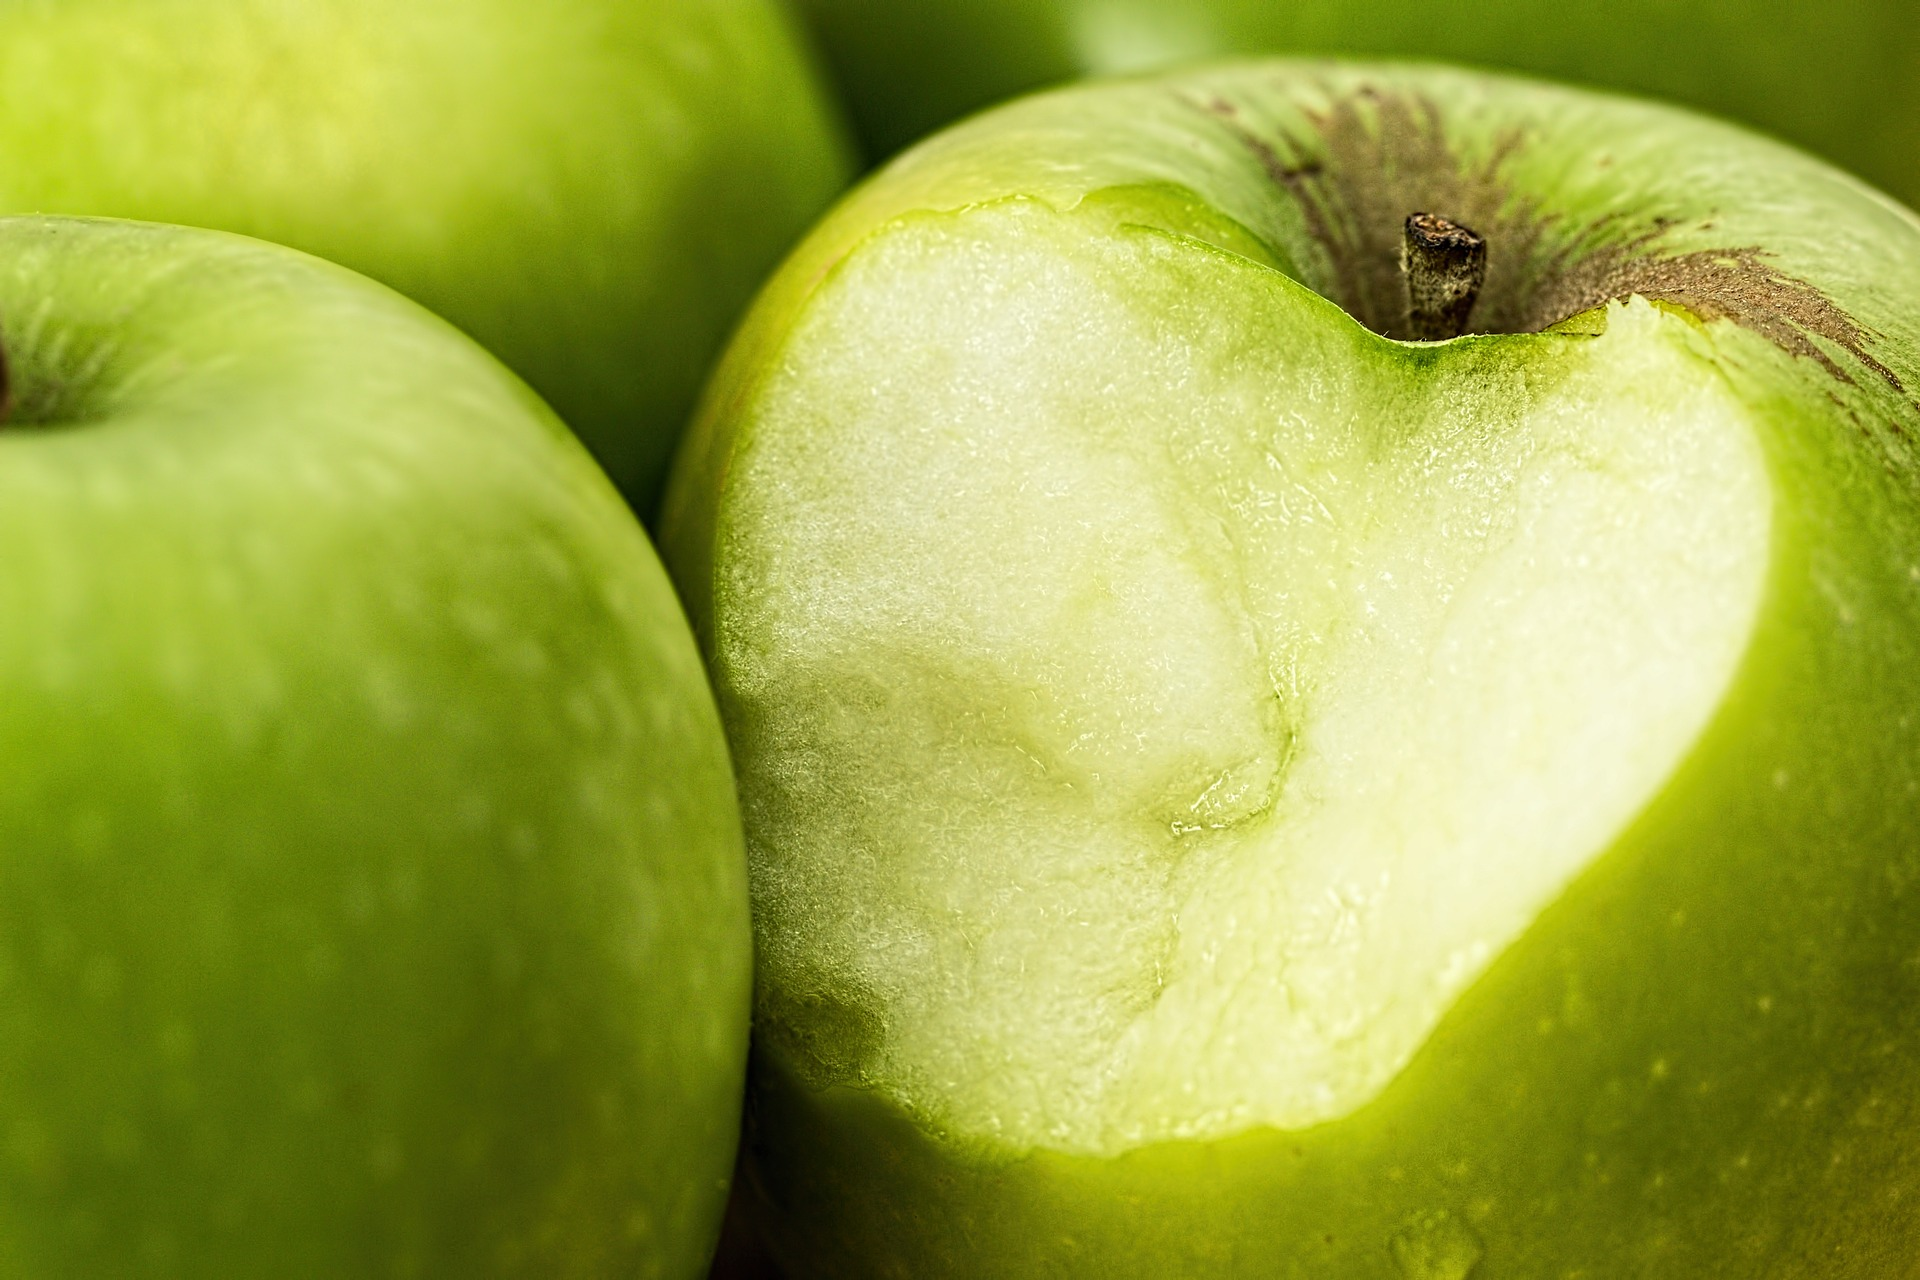 Chunk of apple